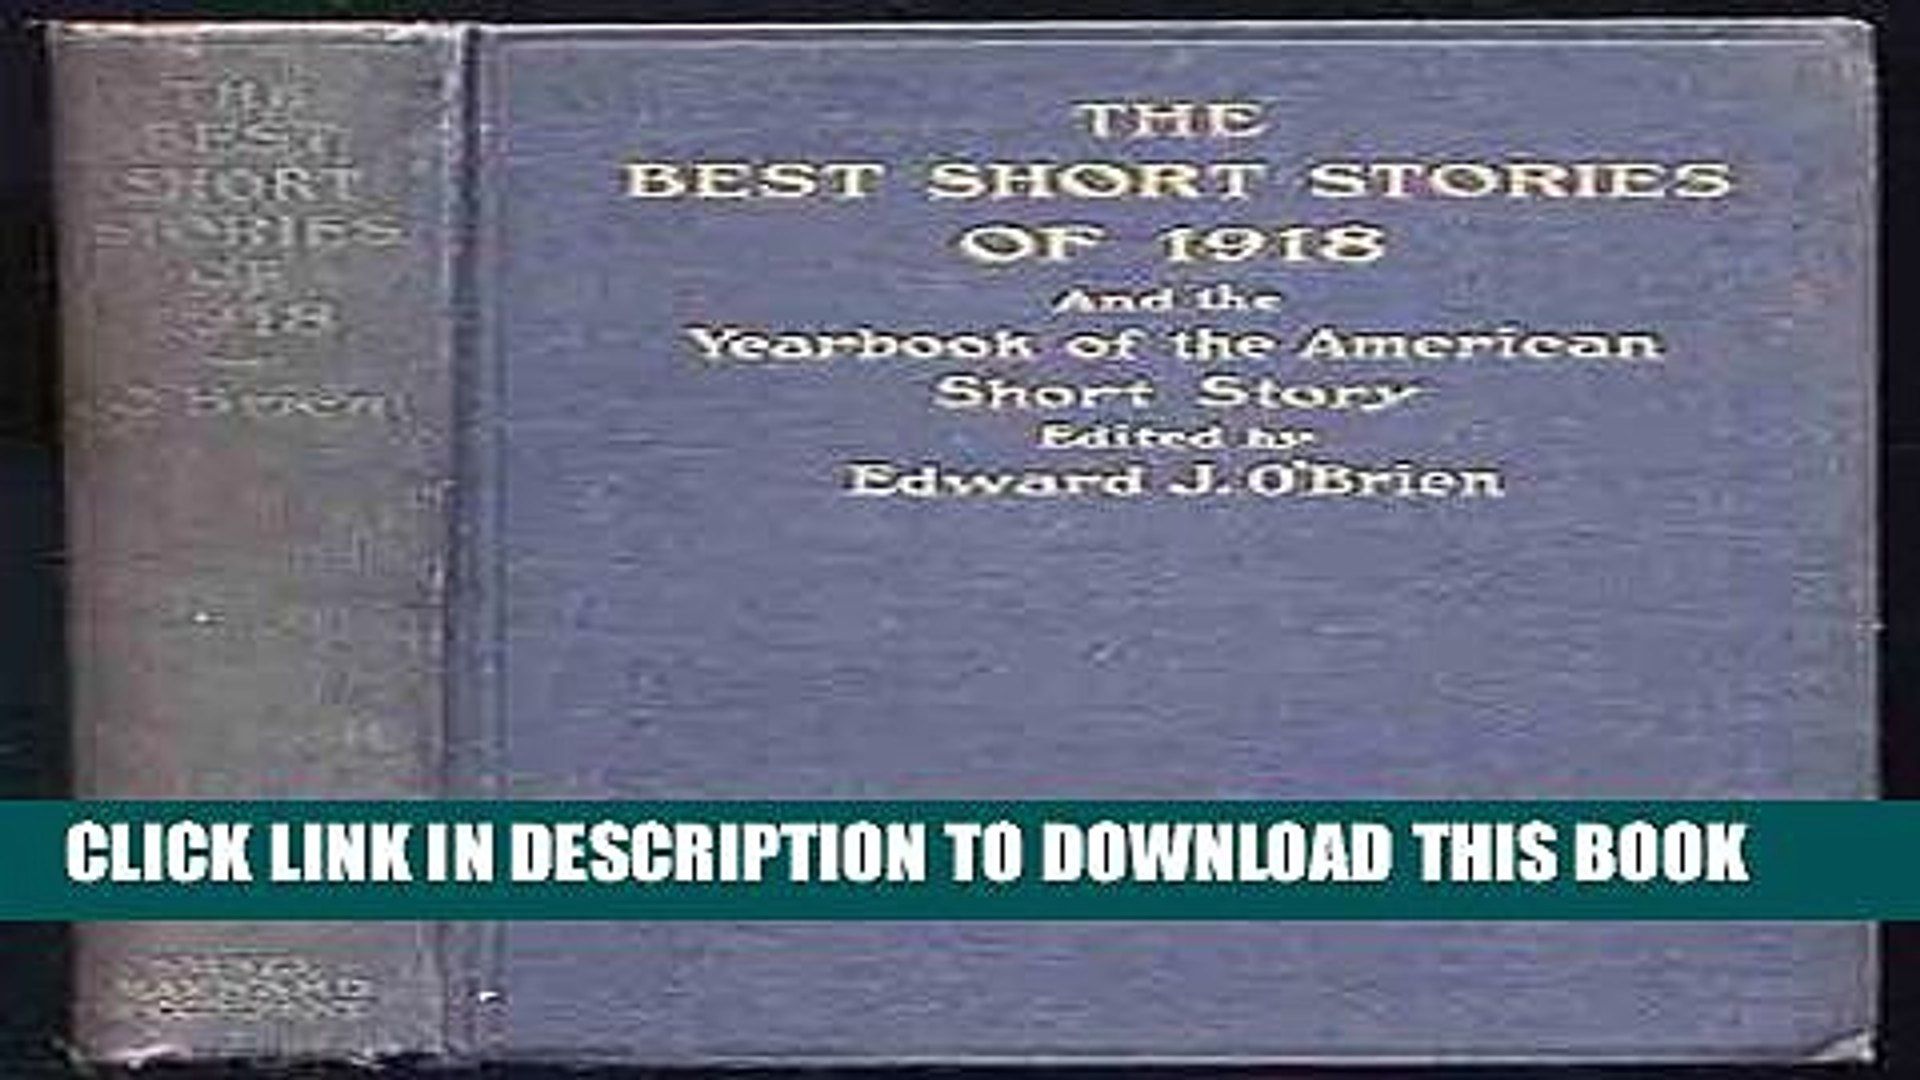 New Book The Best Short Stories of 1918 and the Yearbook of the American Short Story